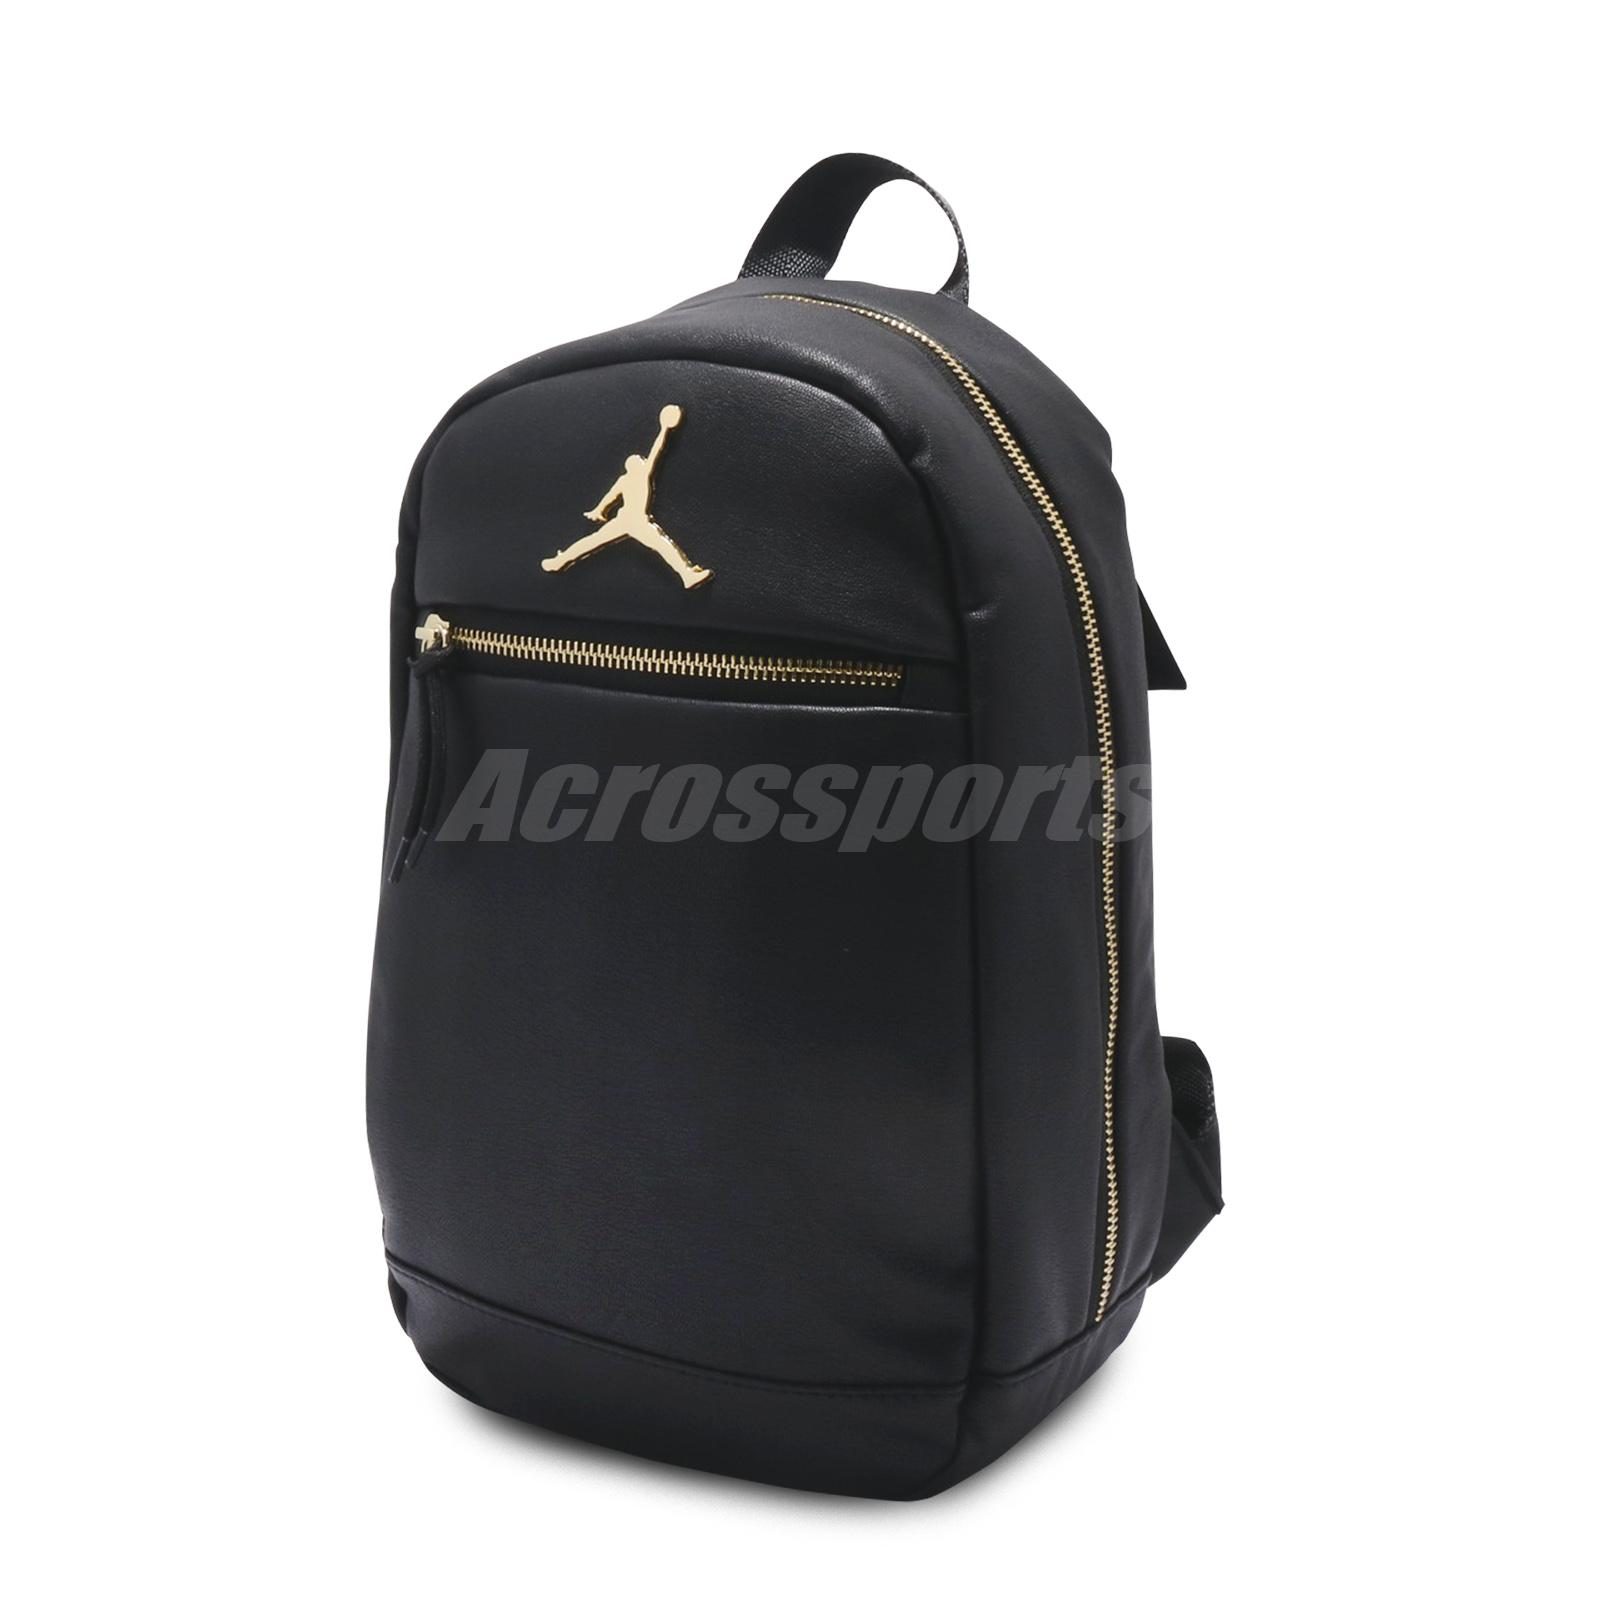 2f2510f8efb7c3 Nike Jordan Skyline Mini Backpack Black Gold School Bookbag Kid Women  7A1978-429